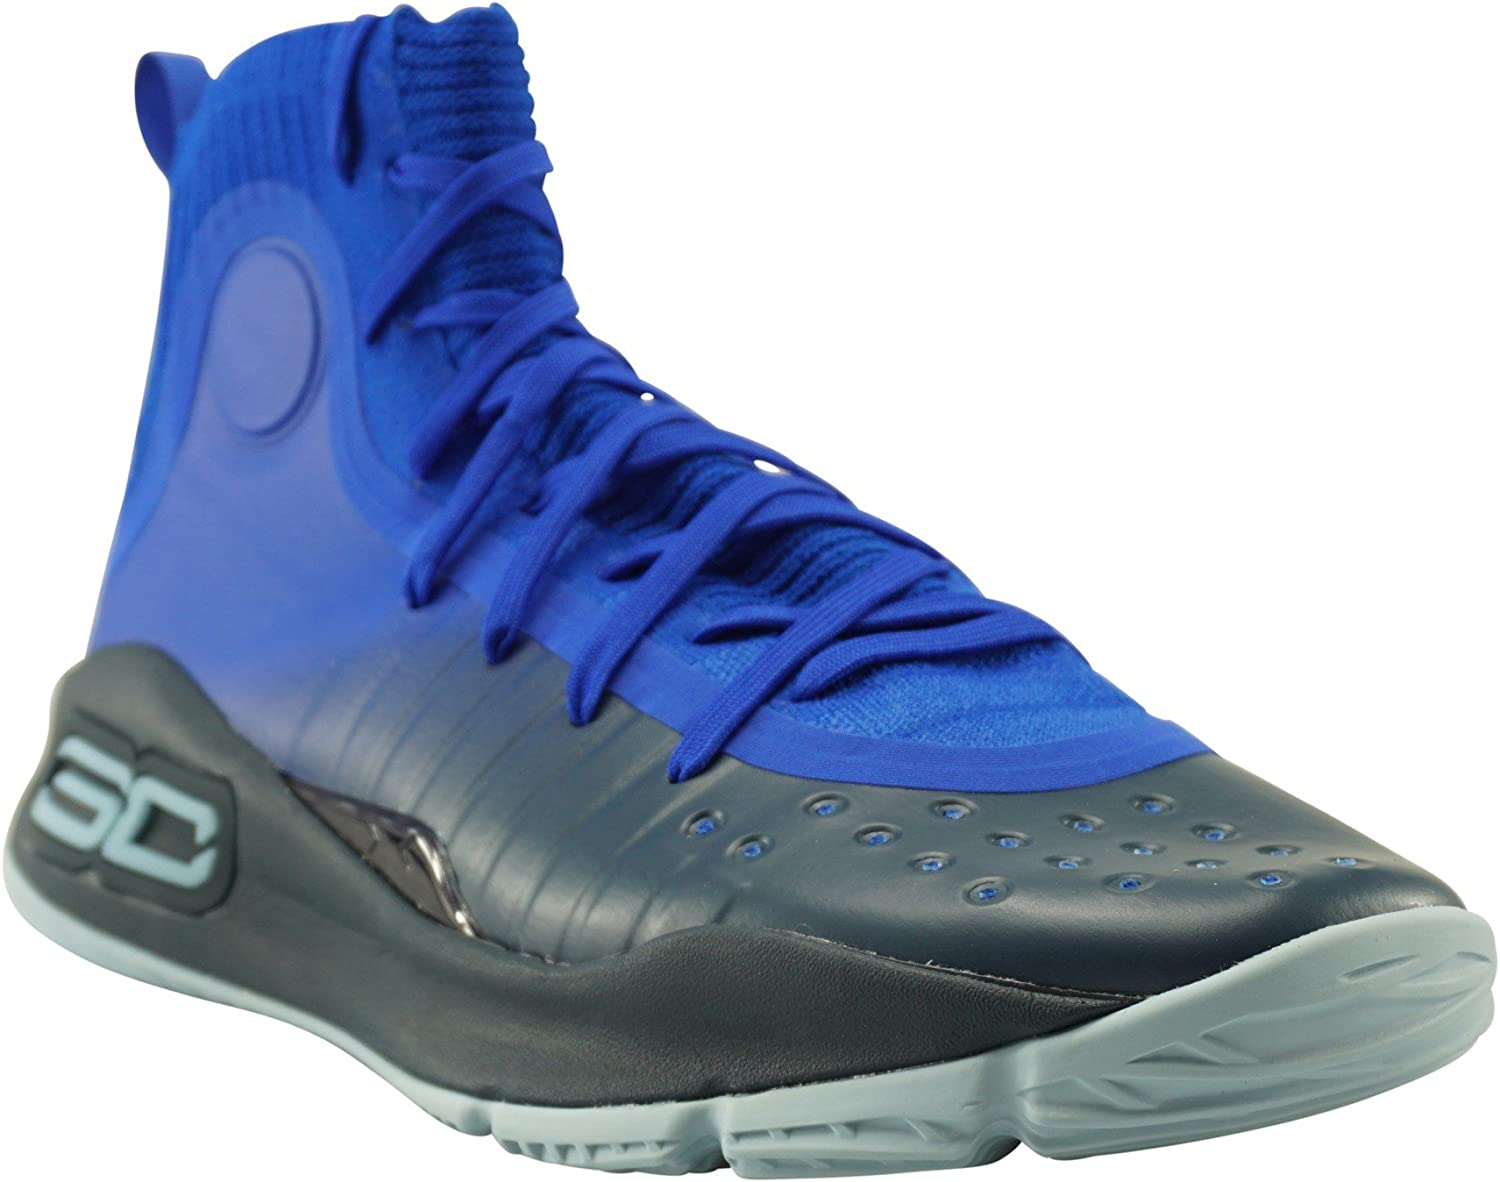 Under Armour Curry 4 Under Armour Curry 4 Basketball Shoes: Amazon.co.uk: Shoes & Bags